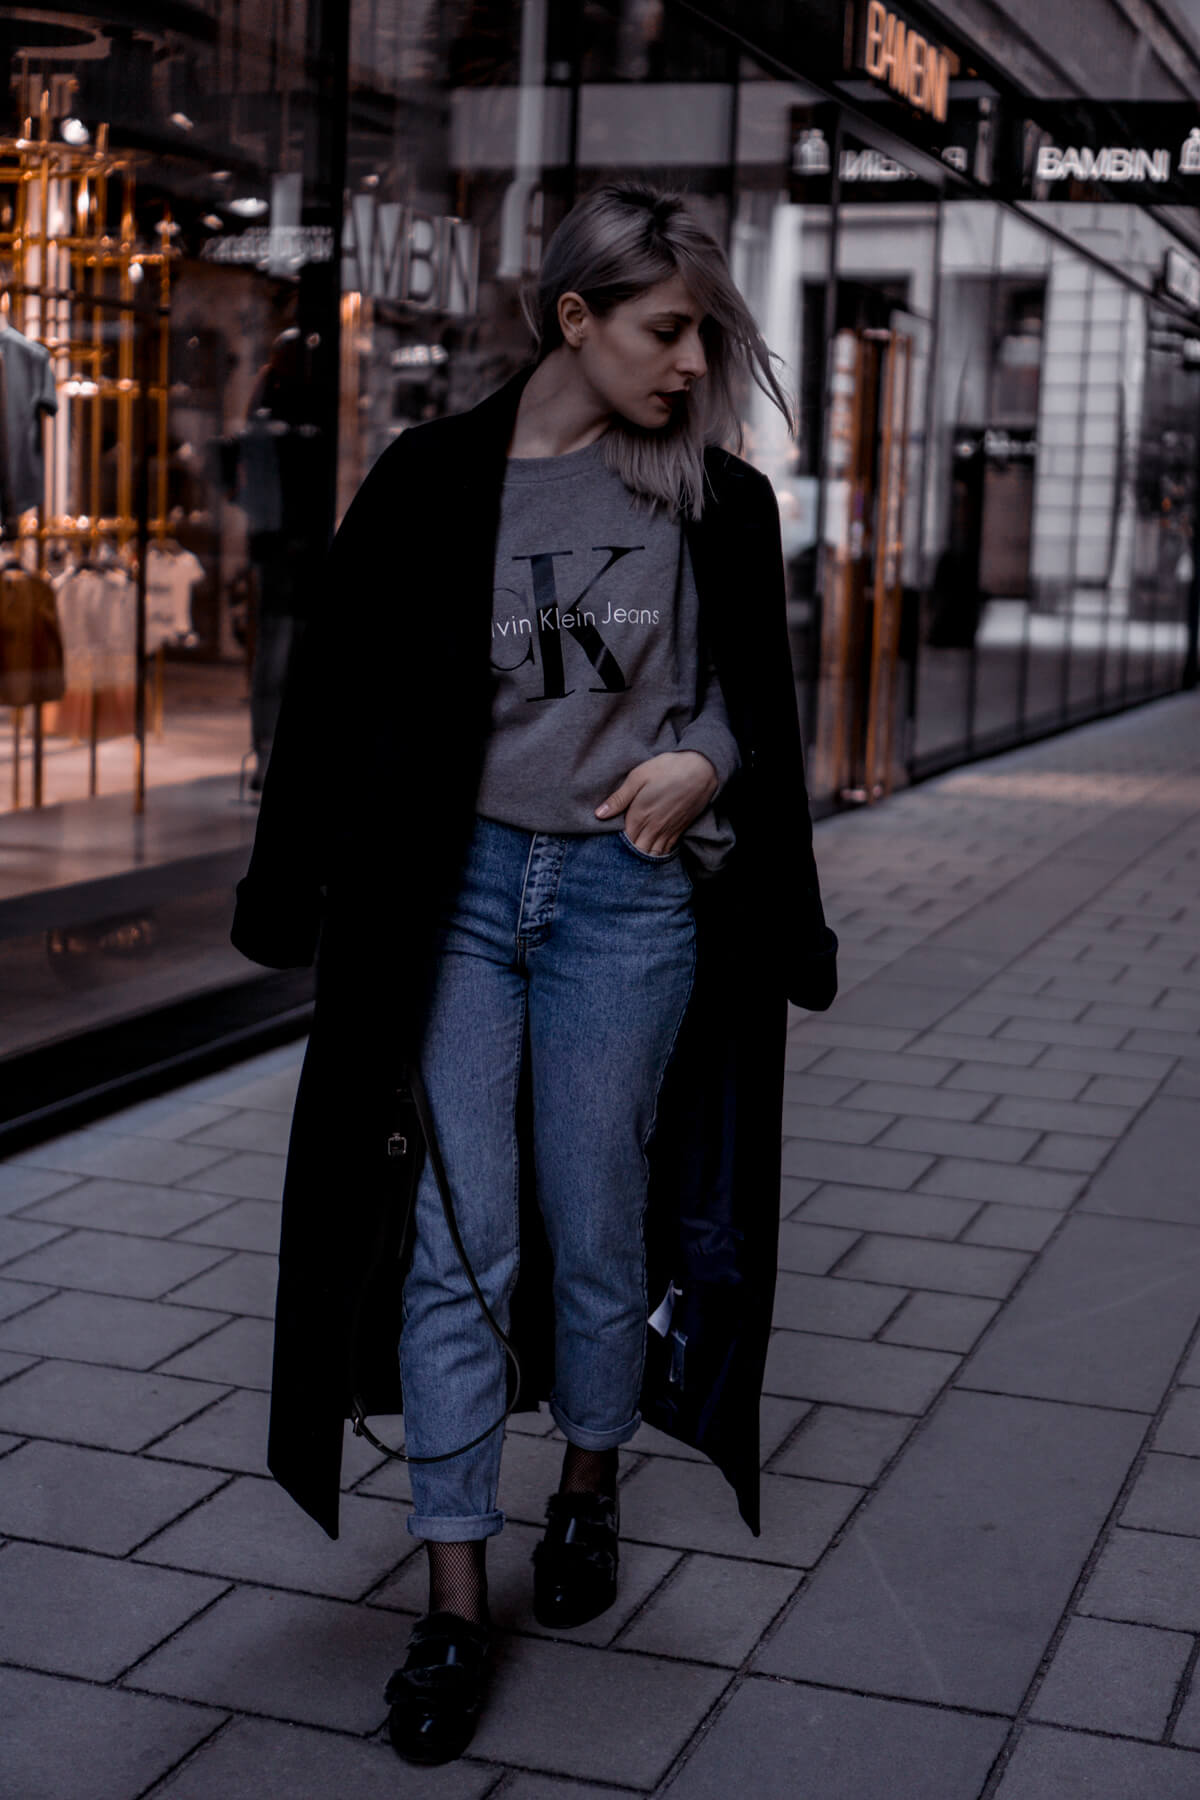 Levis Jeans, Edited Coat, Calvin Klein Logo Sweater